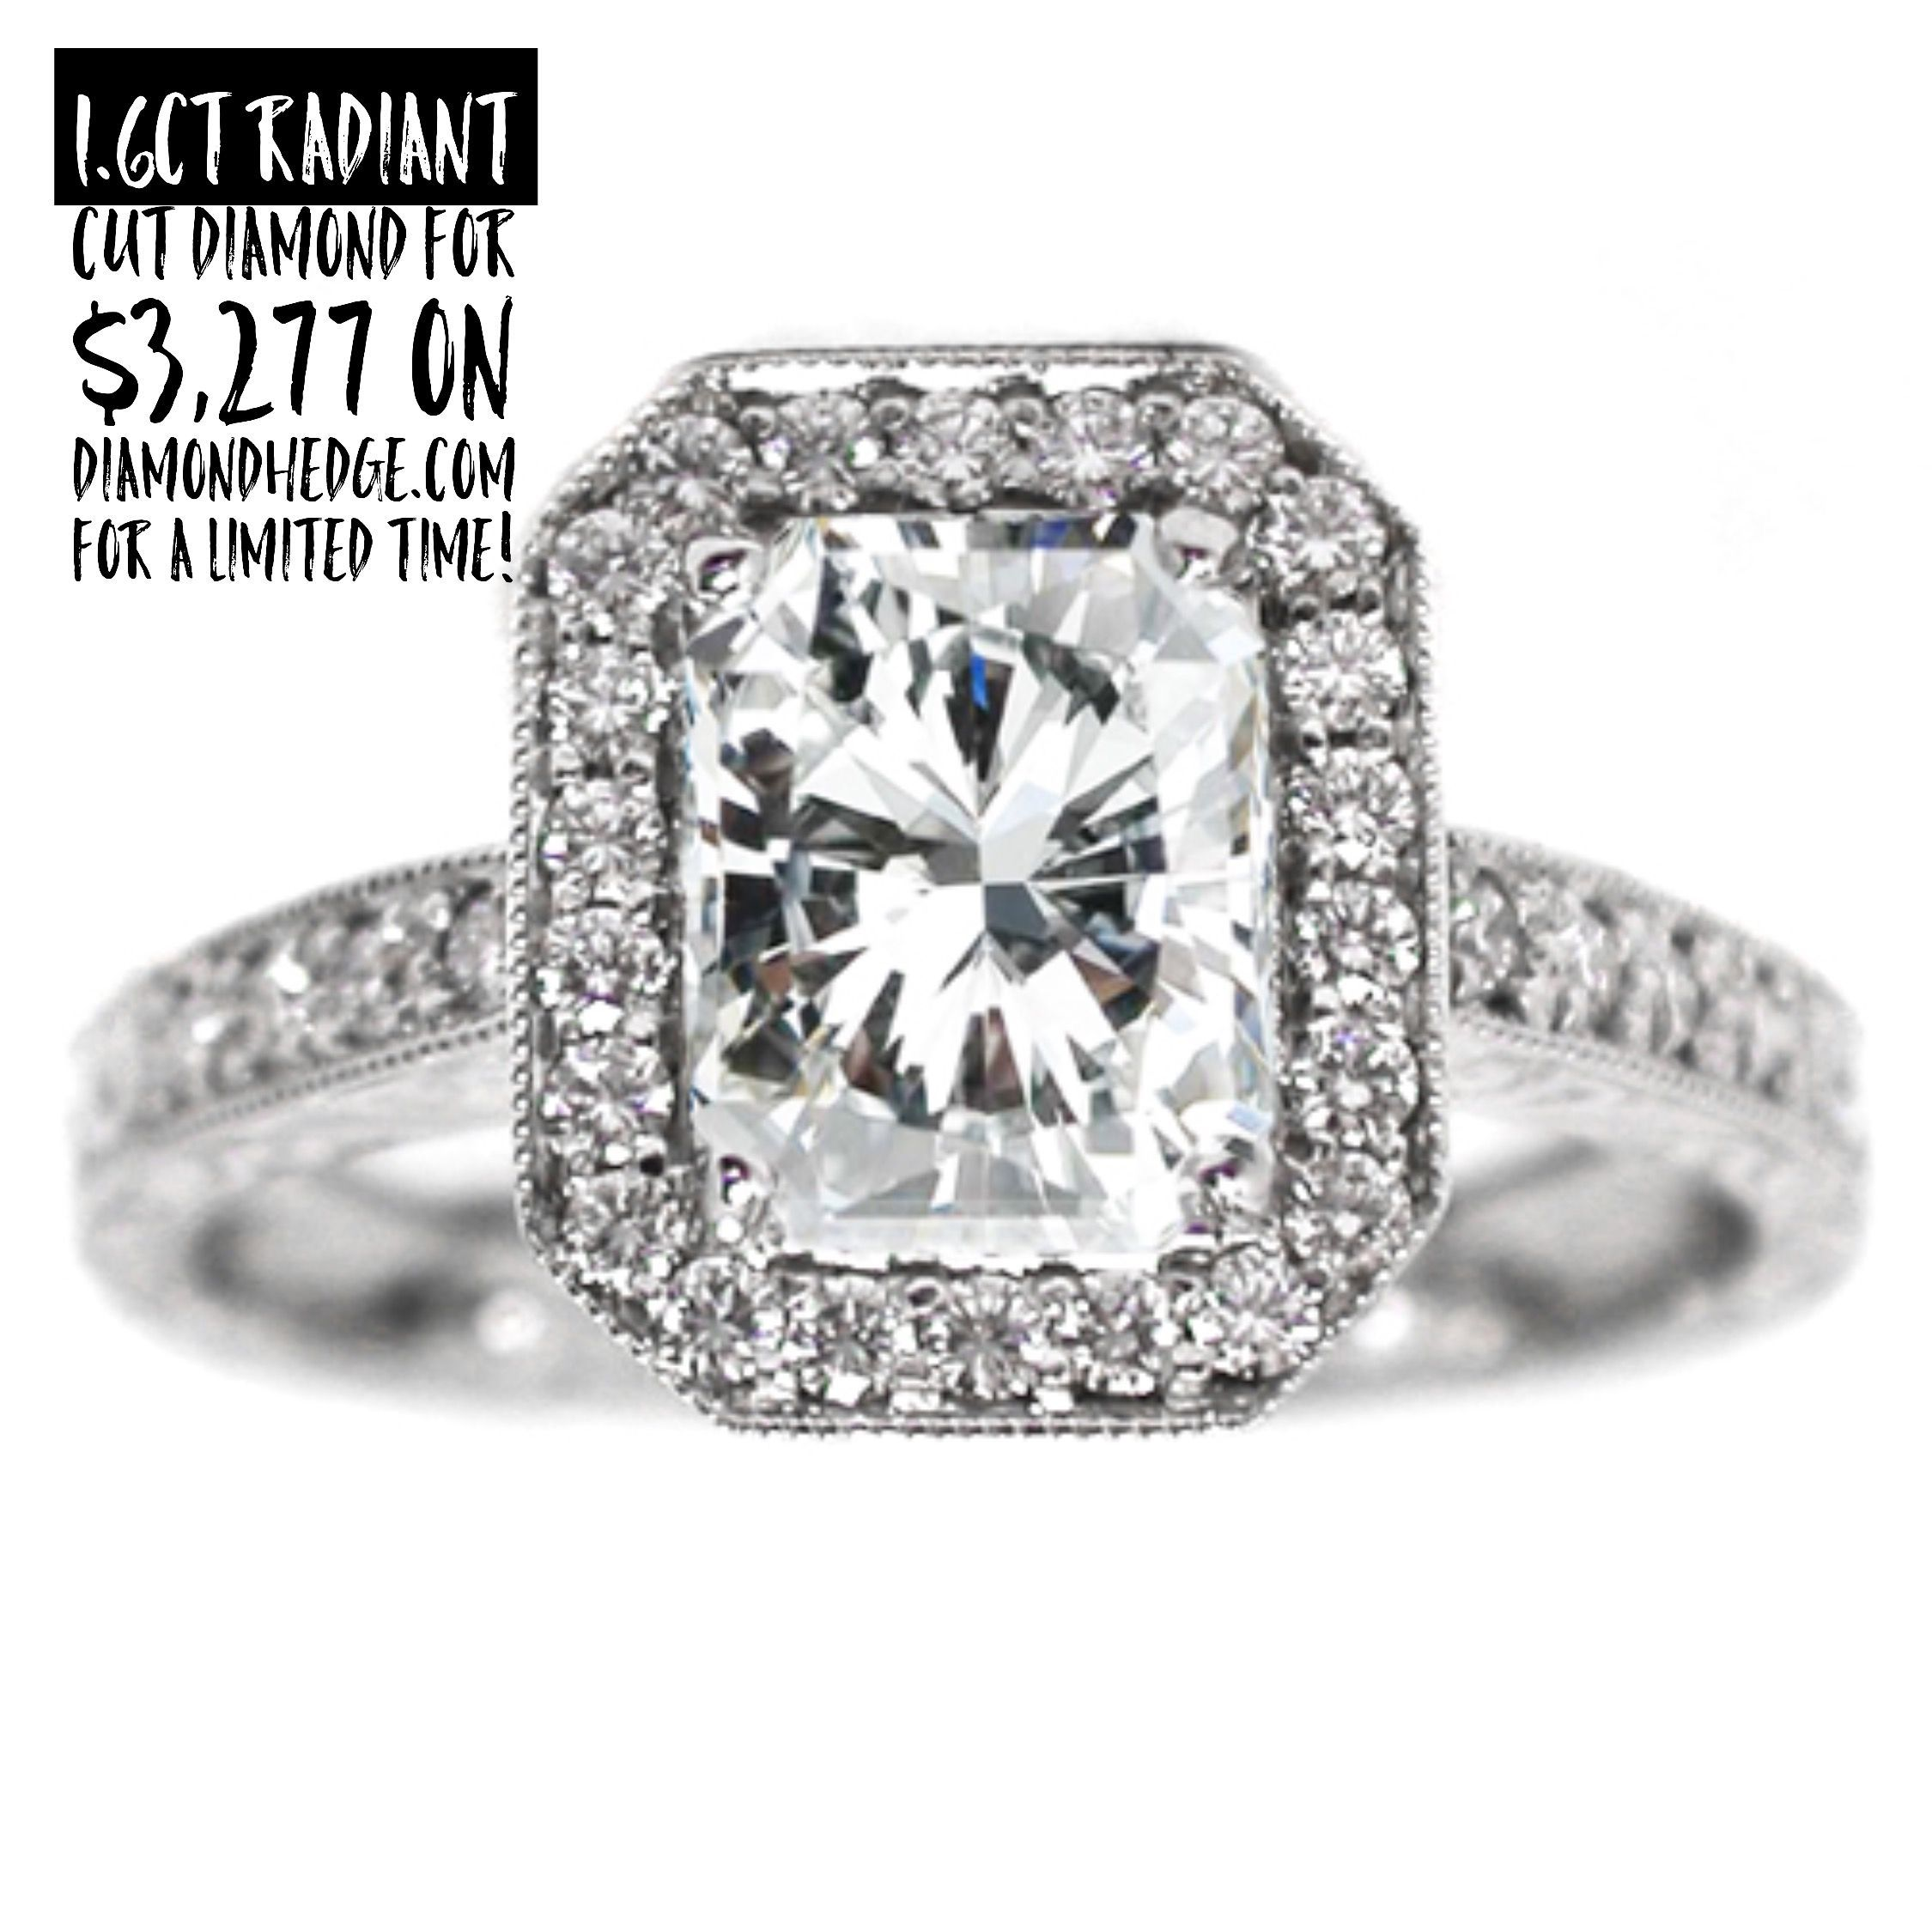 Ct radiant cut diamond for on diamondhedge for a